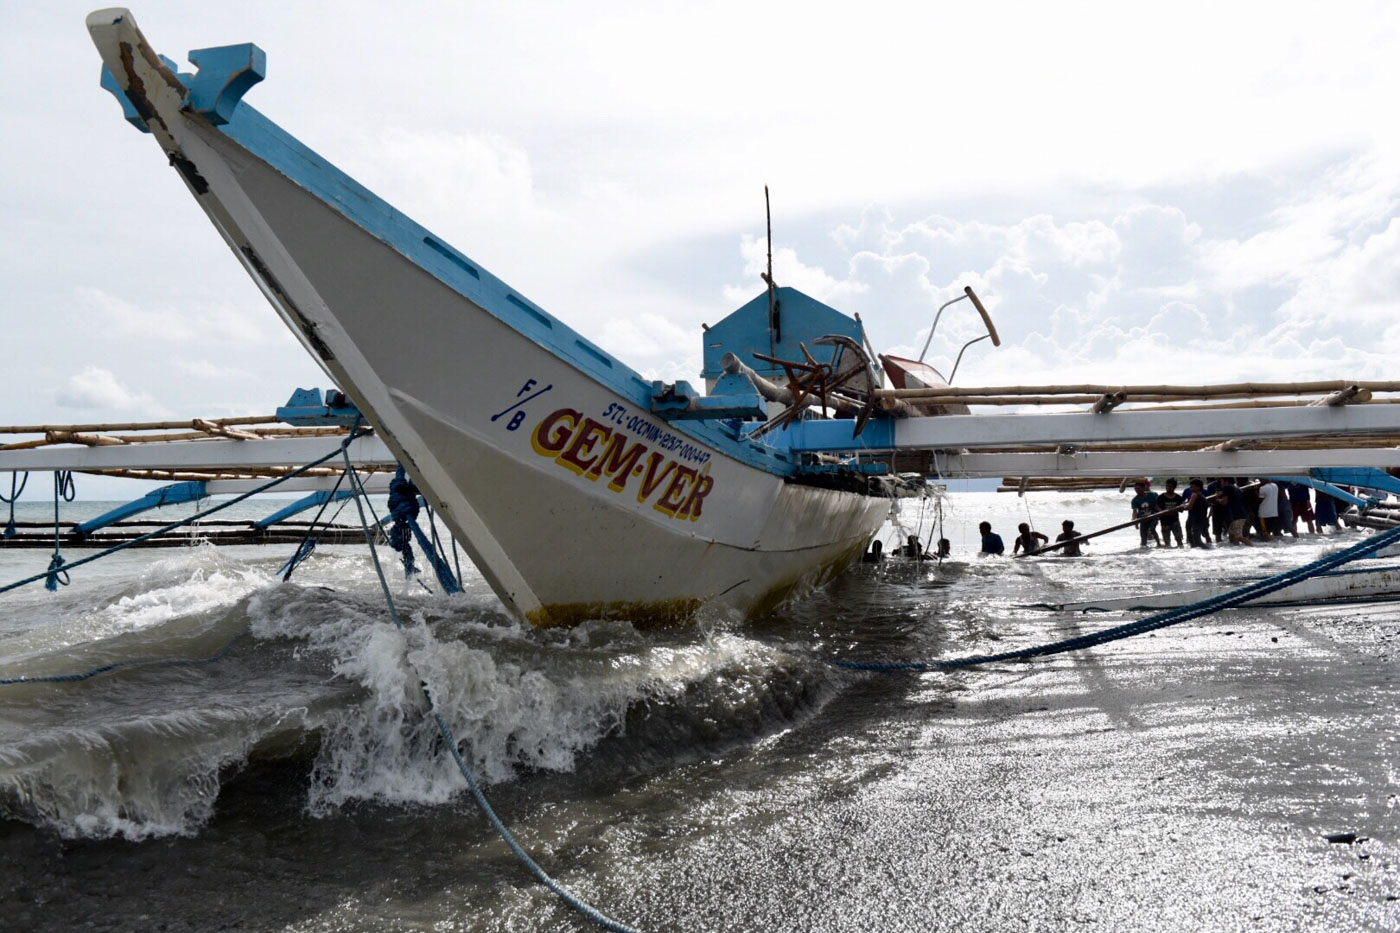 BACK HOME. Fishermen pull the Filipino fishing boat Gem-Ver, which was sunk by a Chinese ship in Recto Bank (Reed Bank), toward the shore of Barangay San Roque I, San Jose, Occidental Mindoro on June 15, 2019. Photo by LeAnne Jazul/Rappler